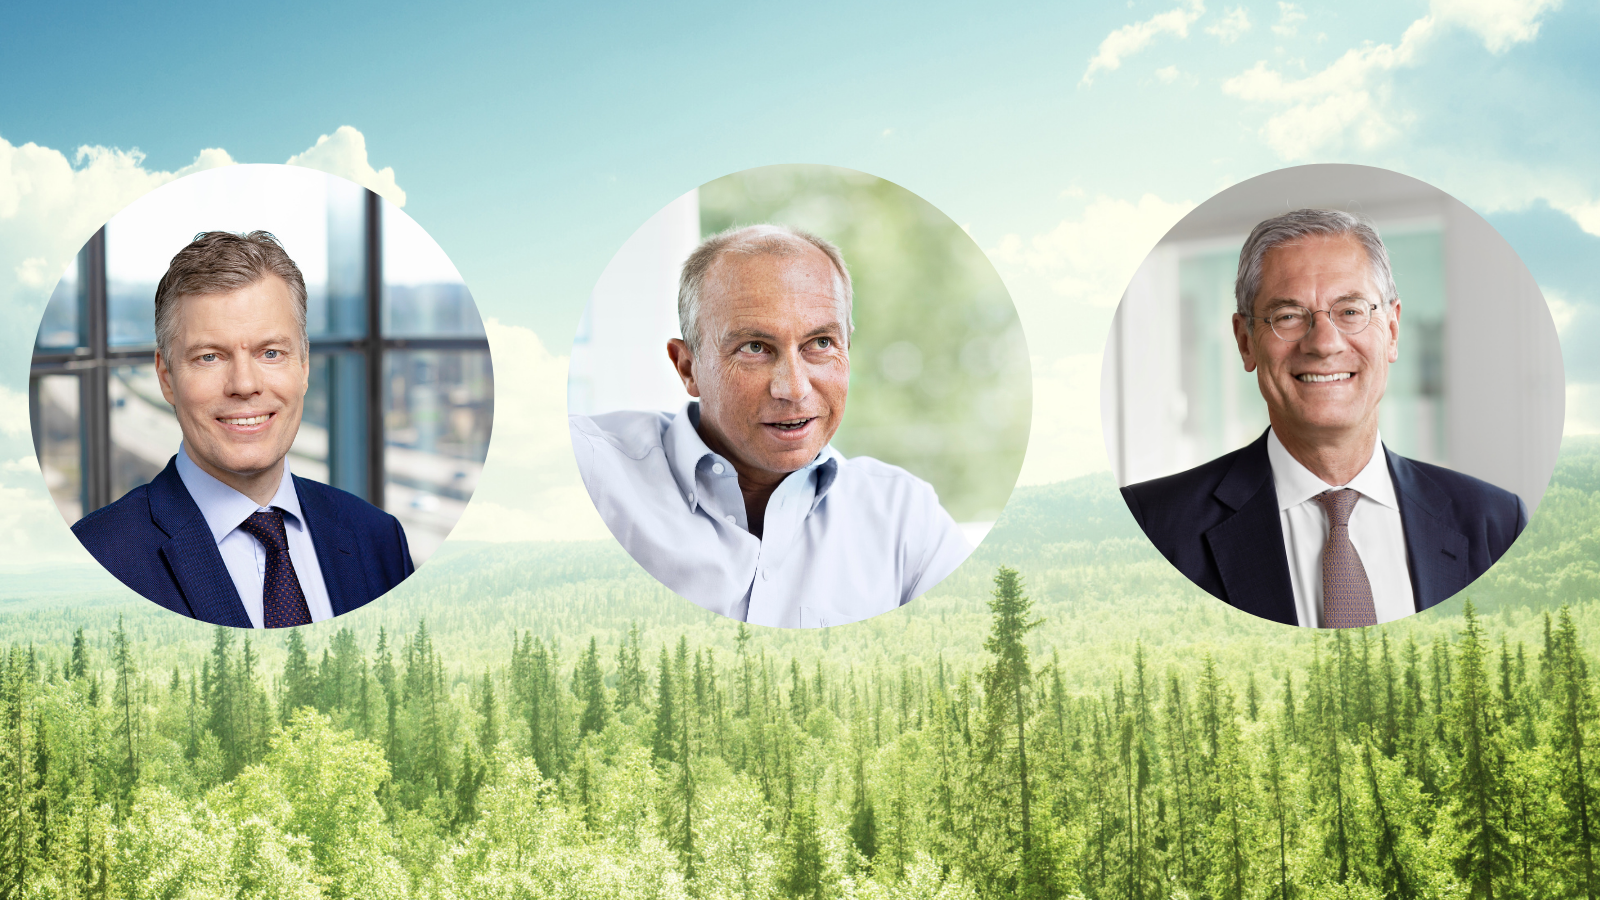 CEO's of Fortum, Statkraft and vattenfall